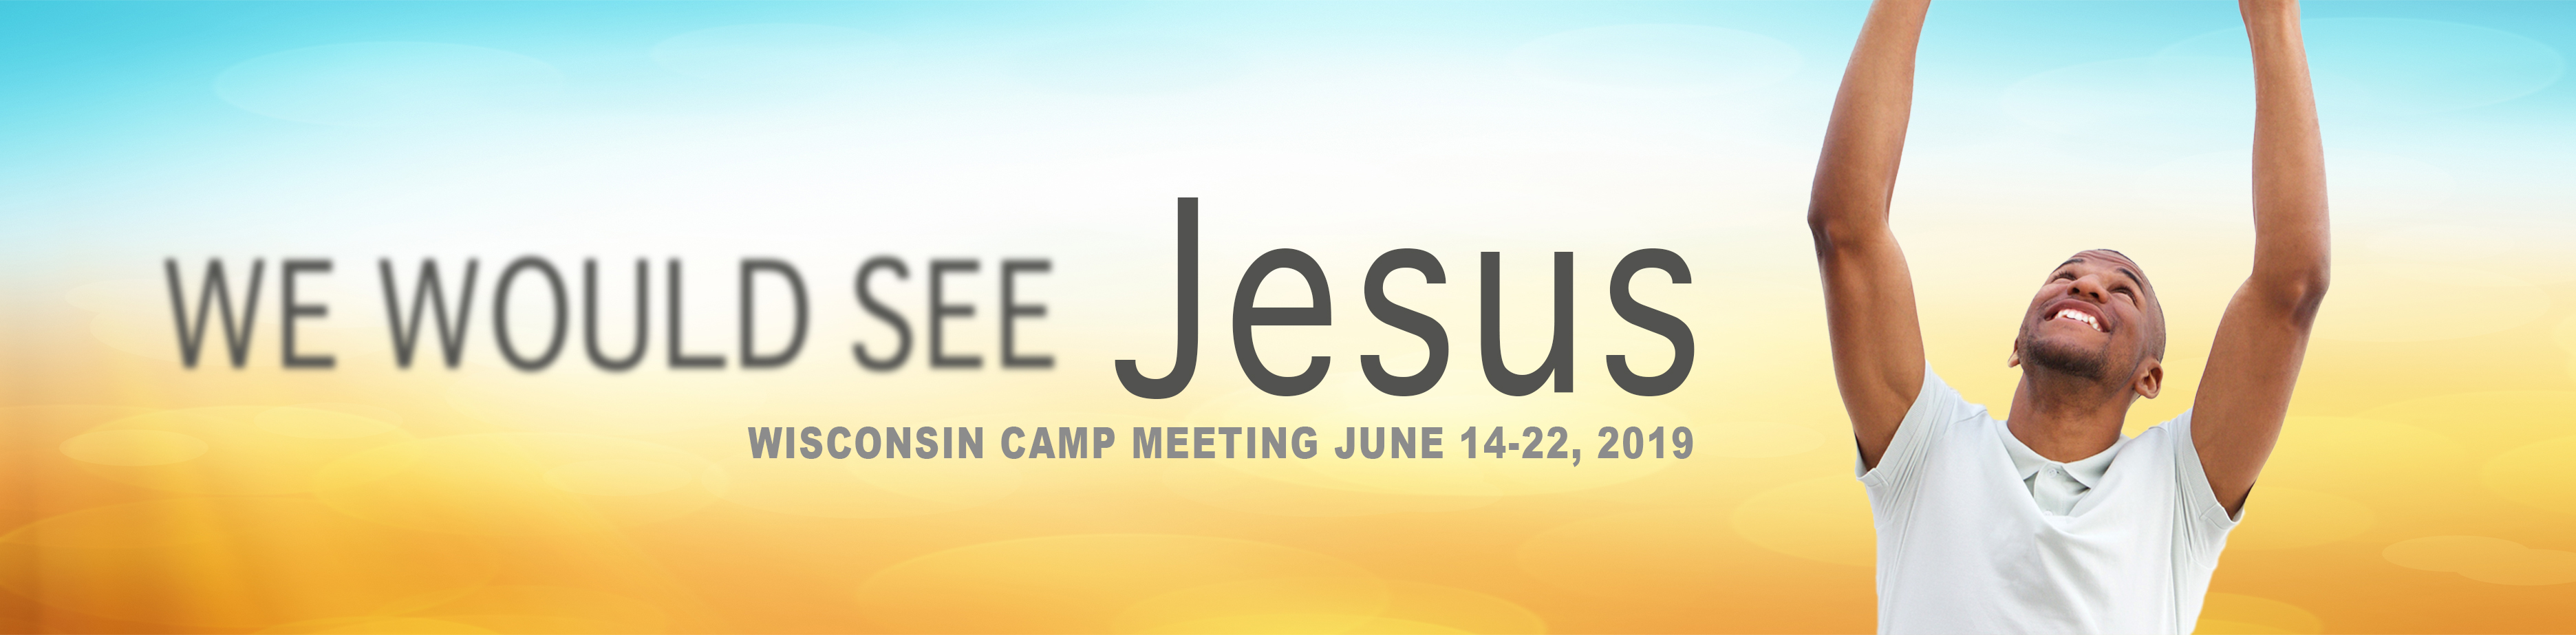 Camp Meeting – Wisconsin Conference of Seventh-day Adventists